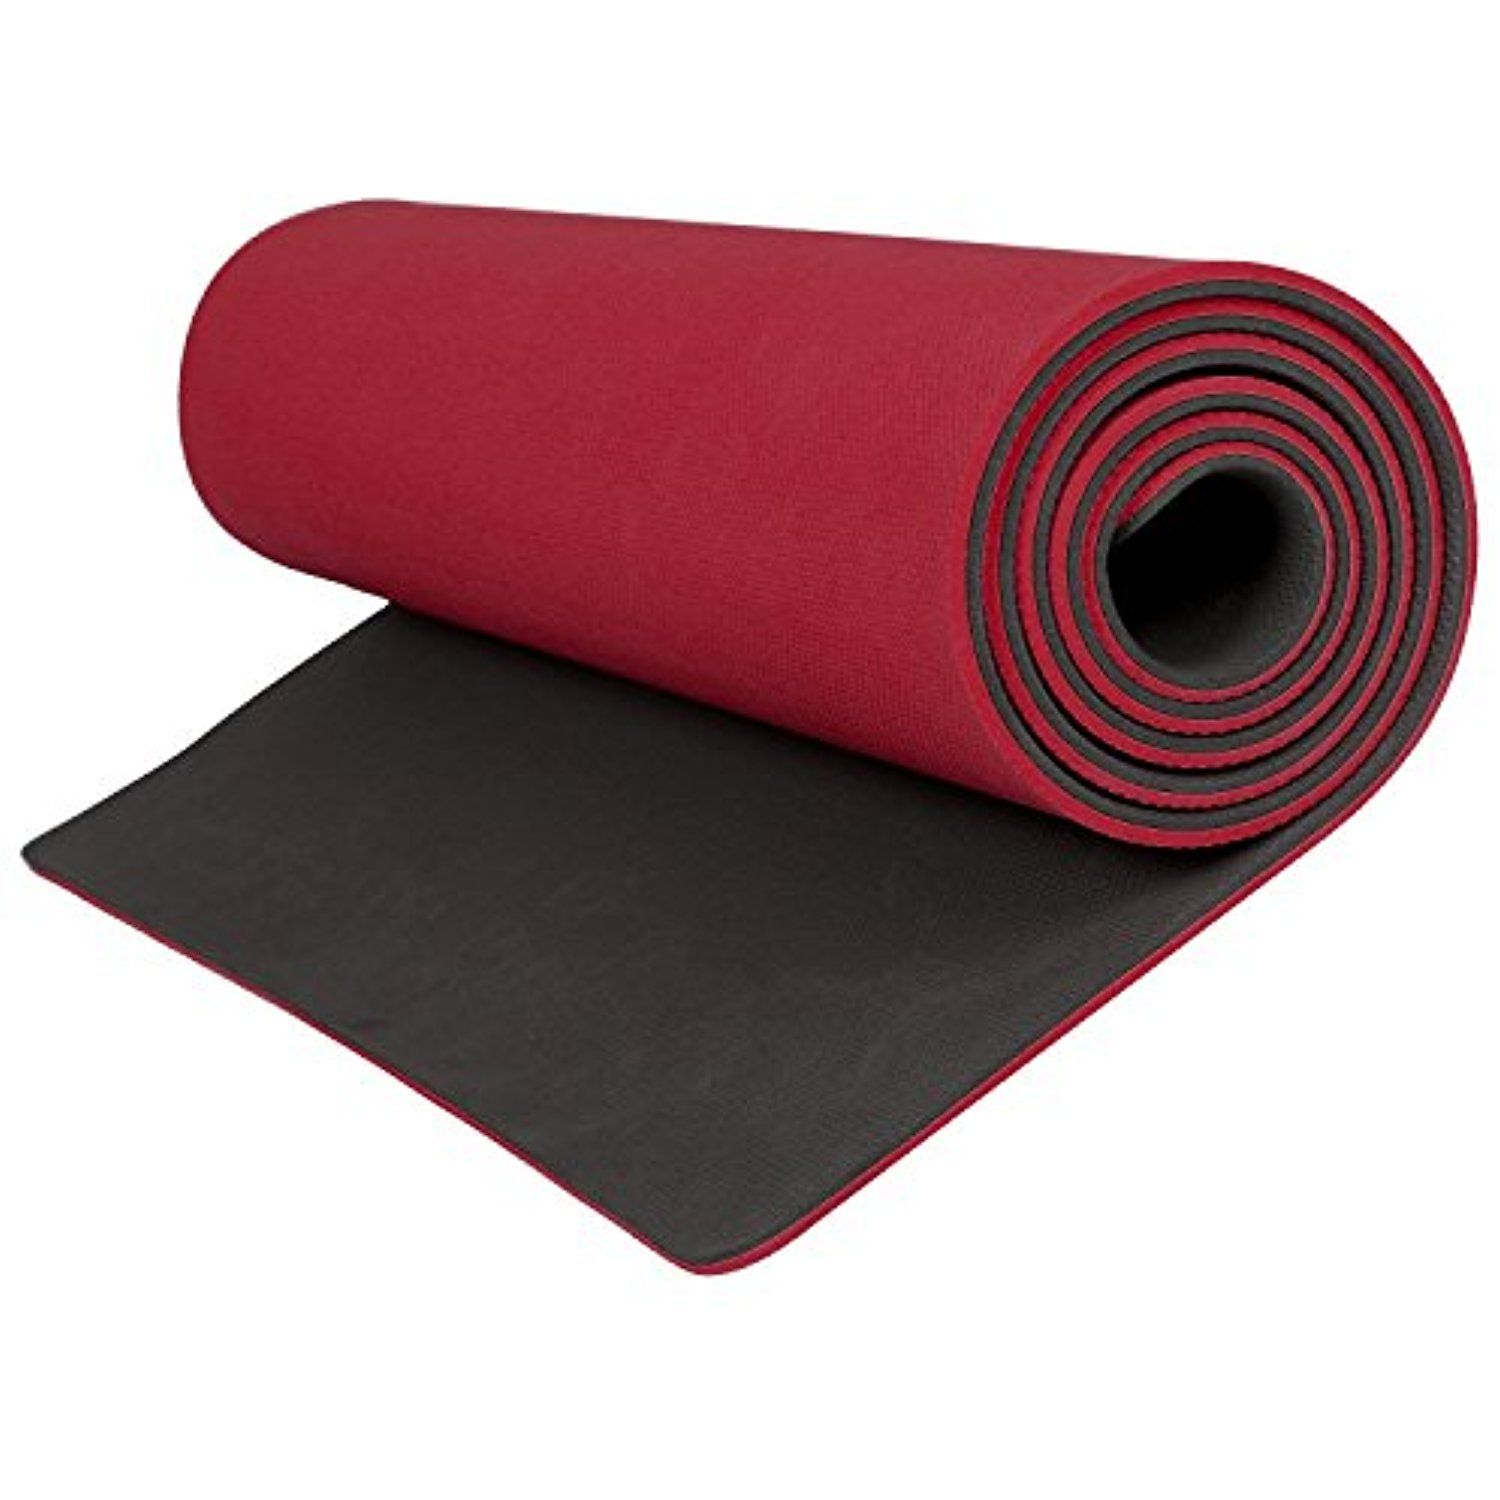 Aerolite Premium Double Sided Custom Sizes Various Colors Yoga Mat Read More At The Image Link This Is An Affiliate Lin Yoga Mats Best Best Yoga Yoga Mat